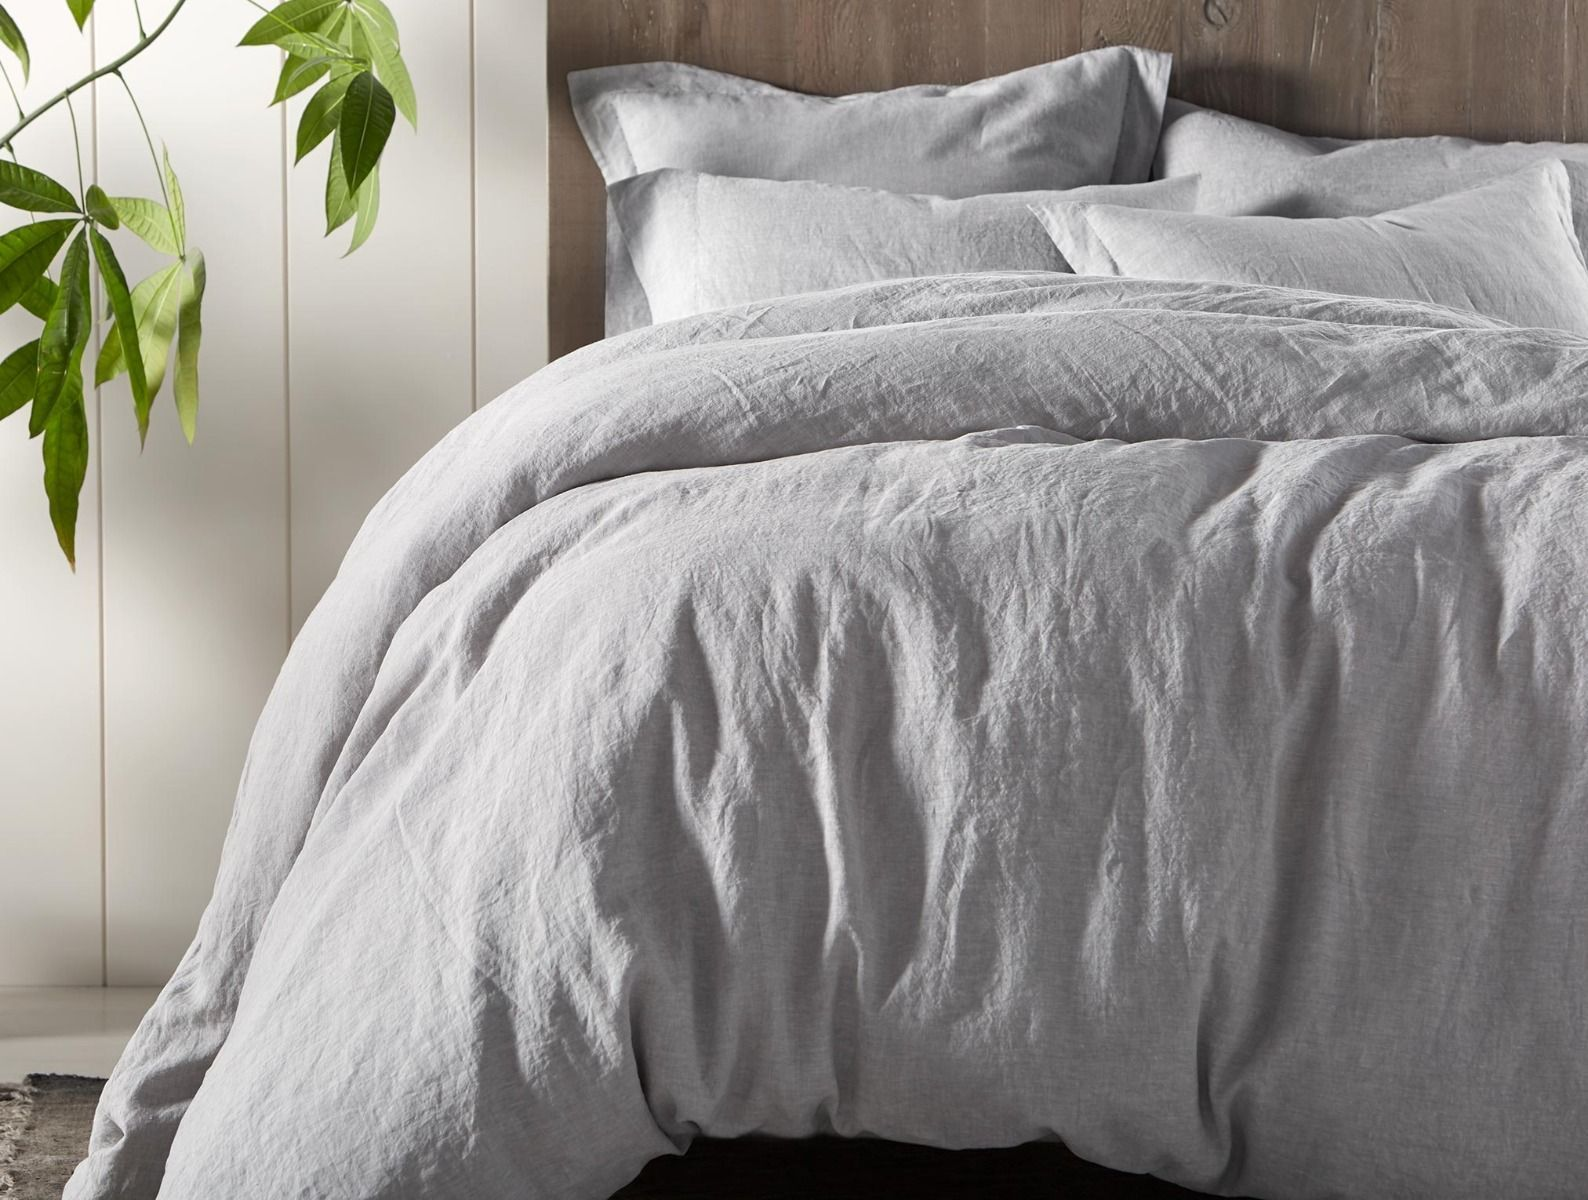 Fig Linens - Coyuchi Organic Linen Chambray Bedding in soft gray